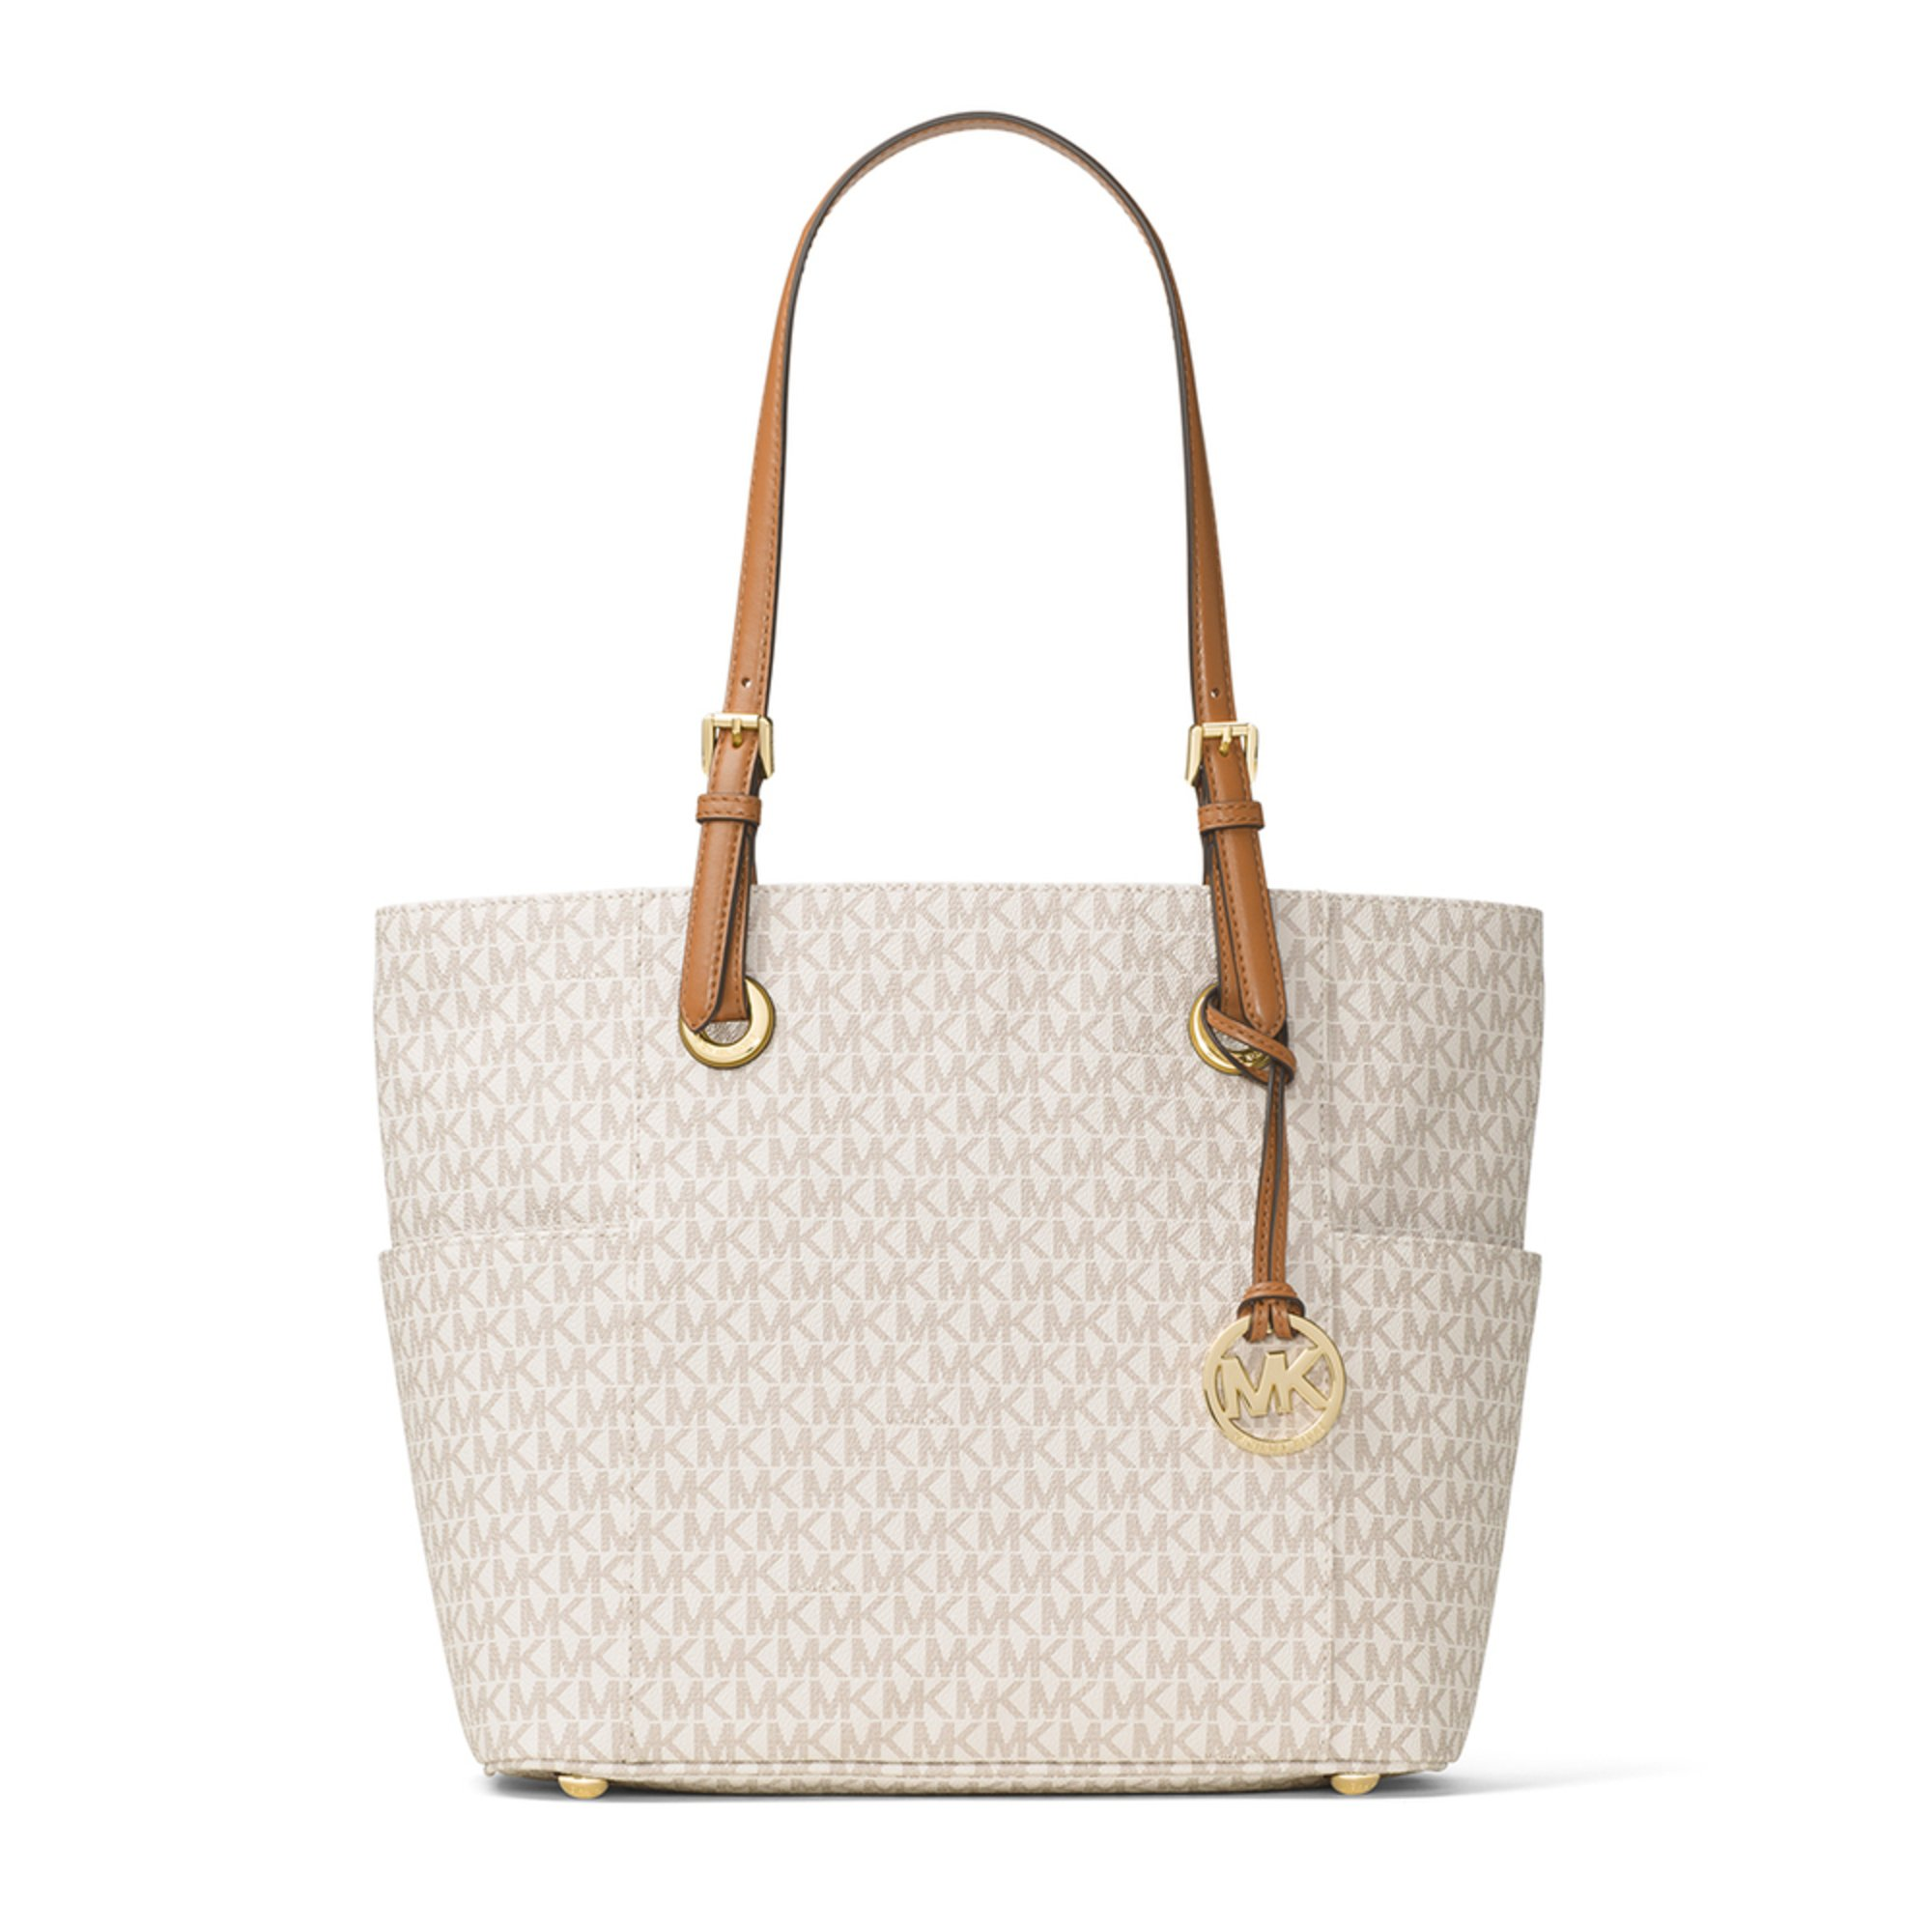 A tote bag is the quintessential comfort accessory. It carries all of your crap (possibly emotional, probably otherwise) without that judgmental, bulging-at-the-seams bloat your other bags.